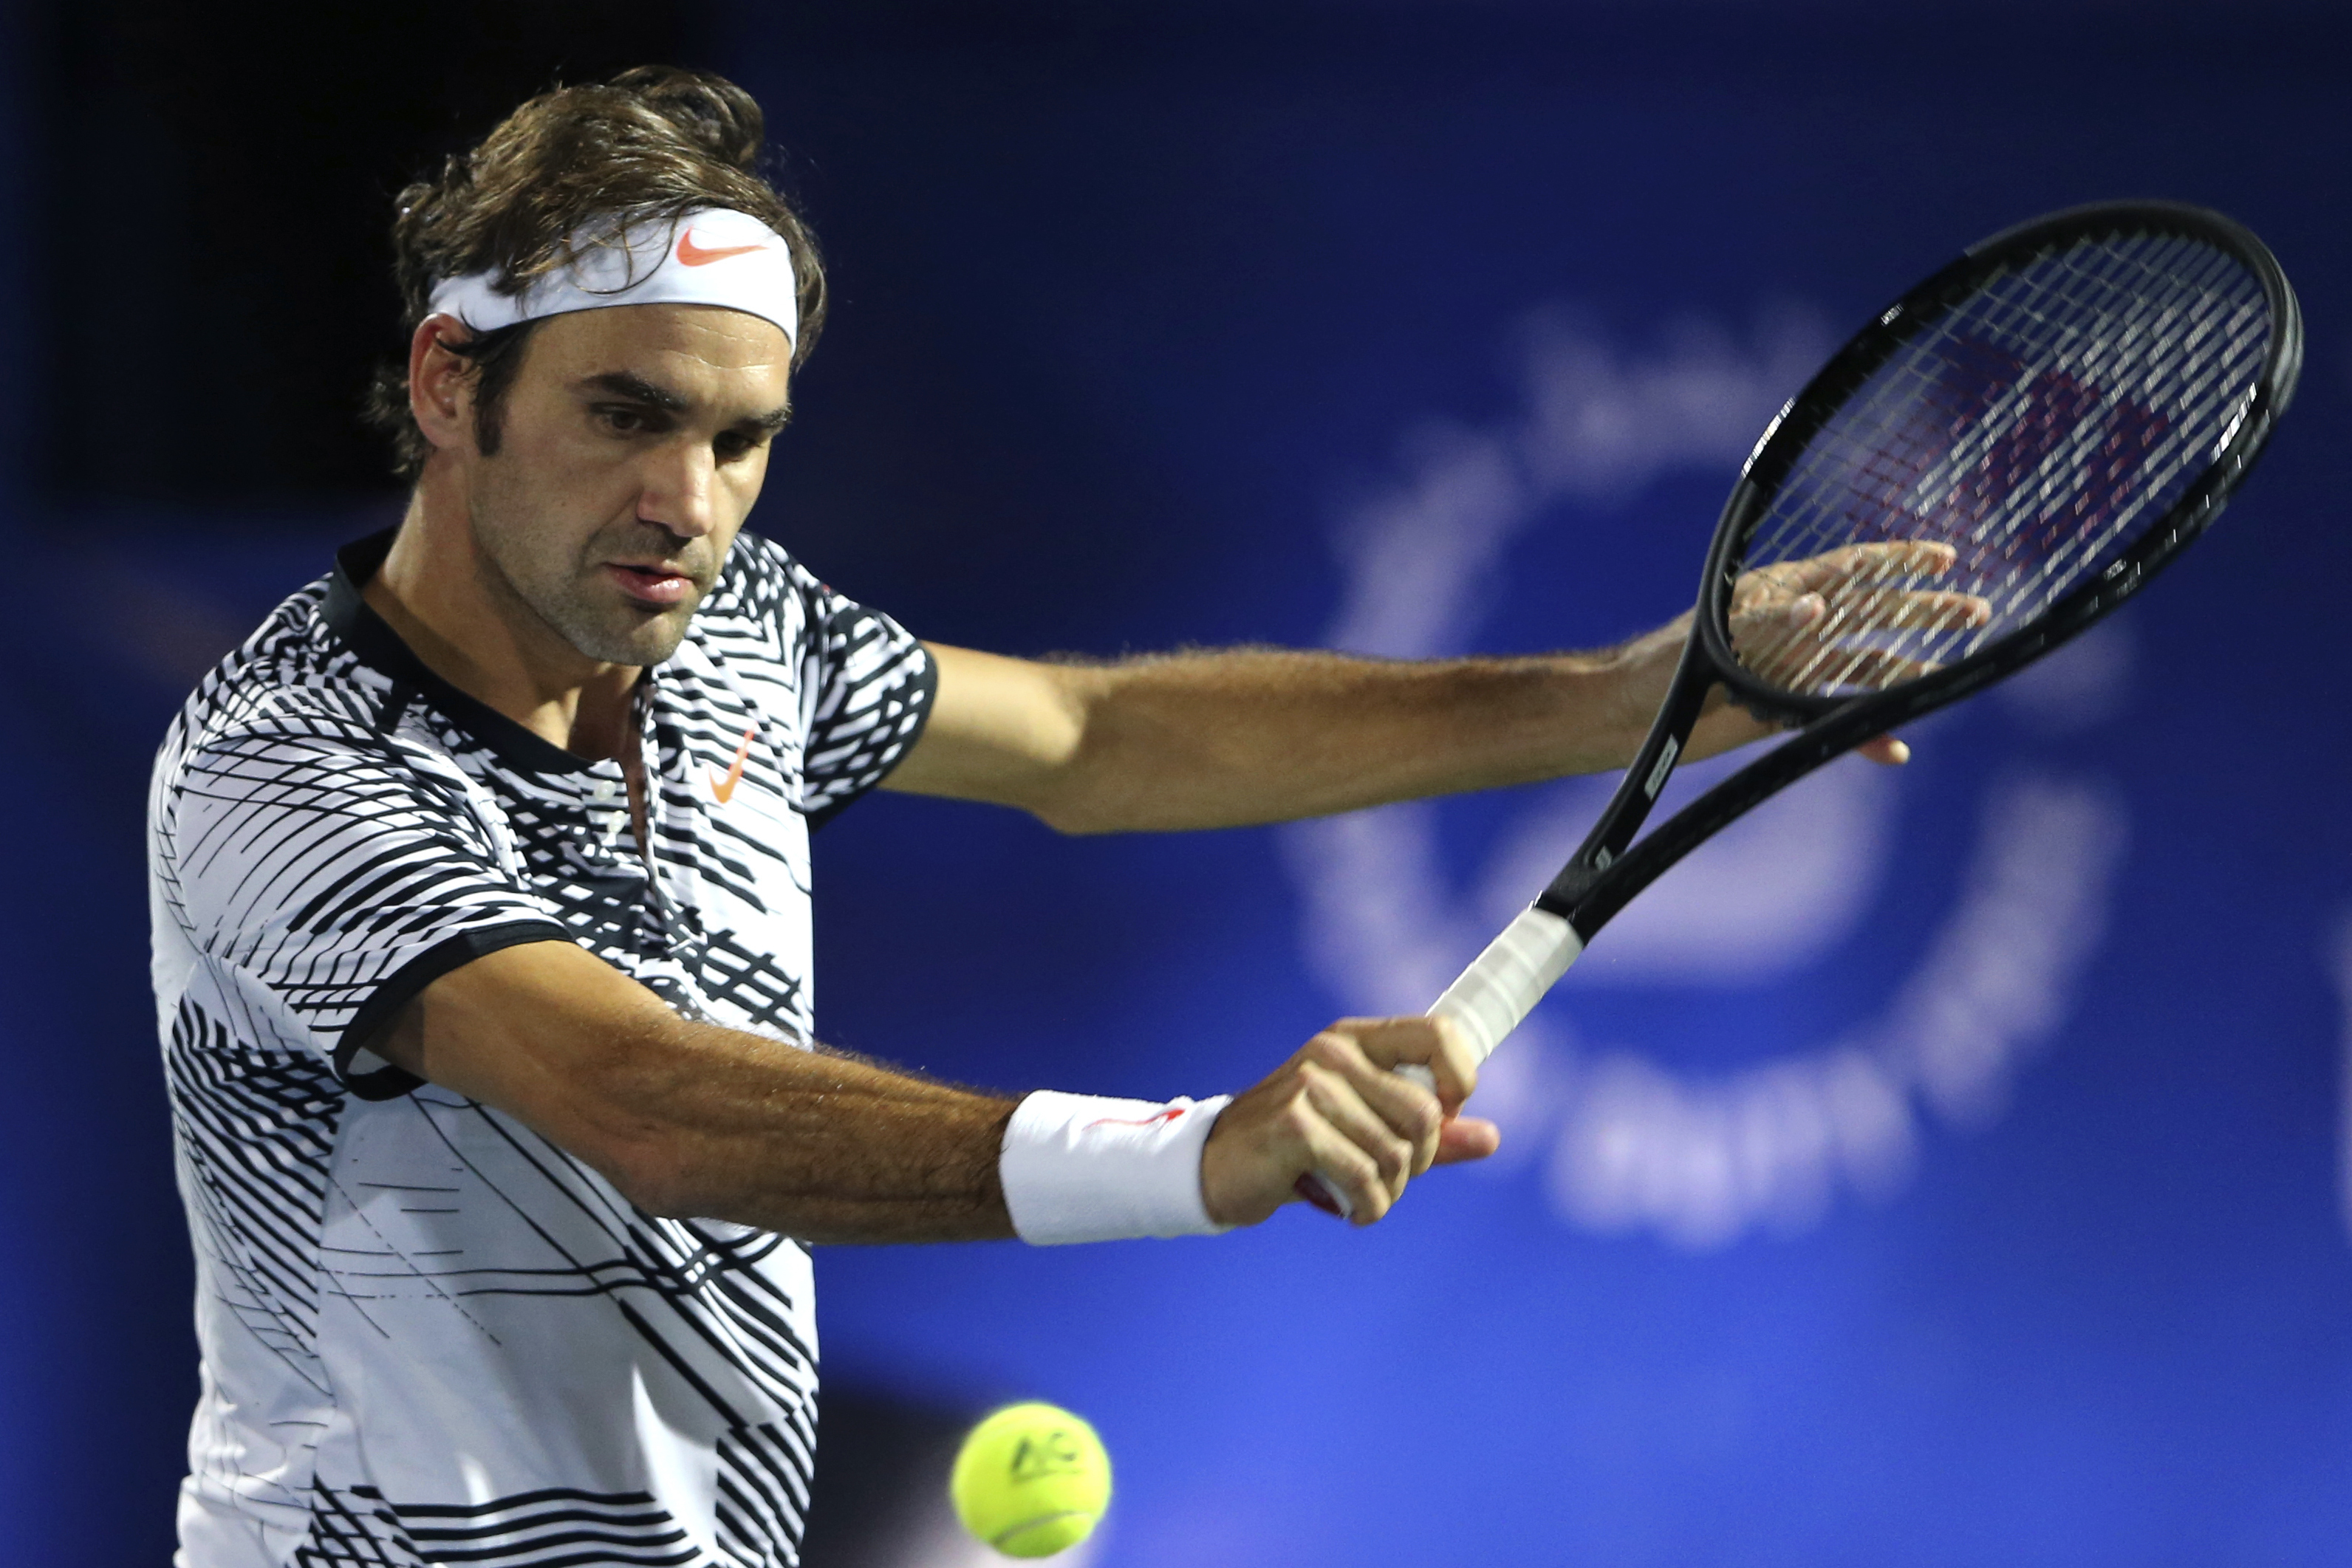 Roger Federer of Switzerland returns the ball to Benoit Paire of France during the Dubai Tennis Championships in Dubai, United Arab Emirates, Monday, Feb. 27, 2017. (AP Photo/Kamran Jebreili)